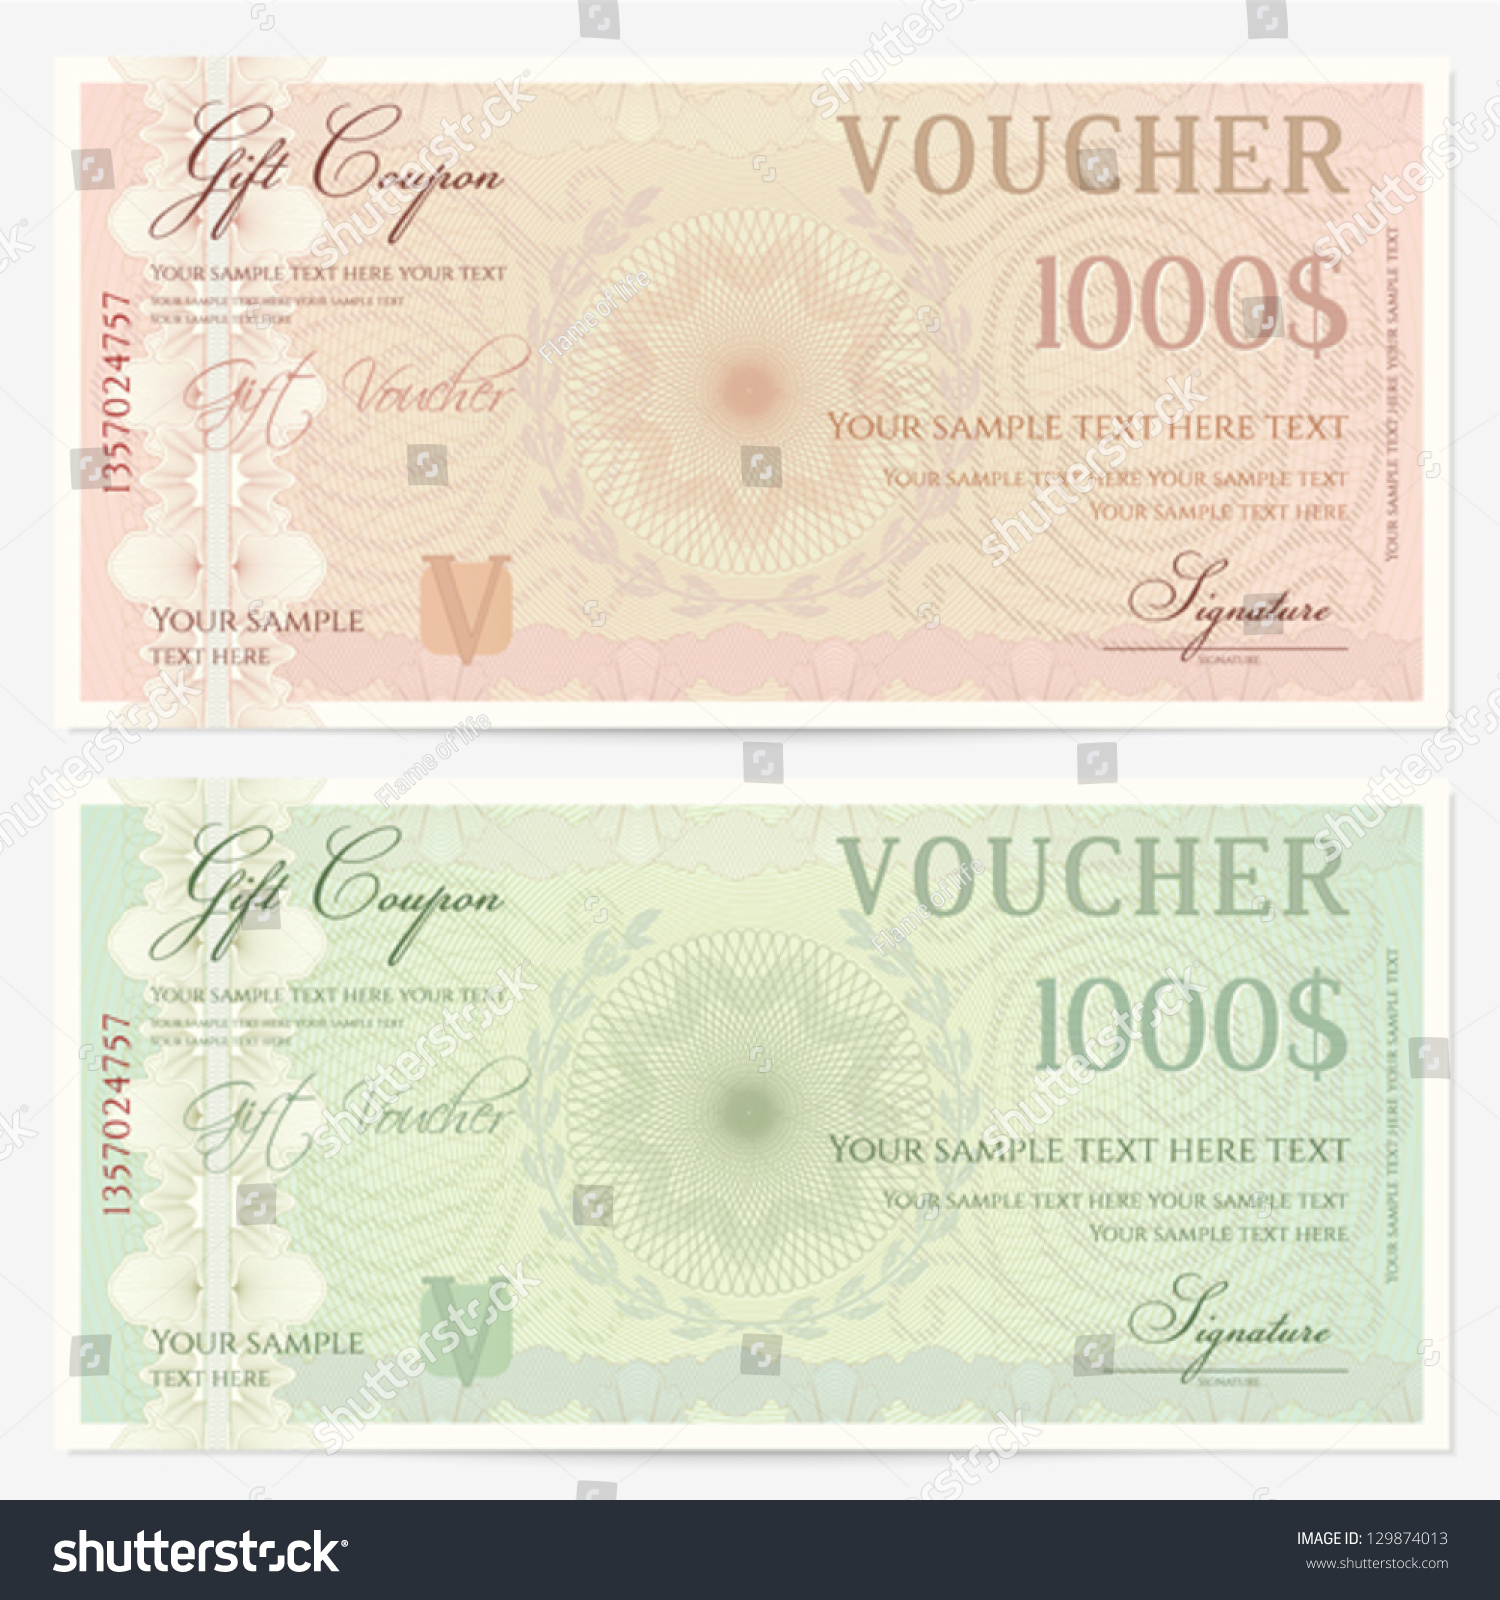 cheque voucher template - voucher template guilloche pattern watermarks border stock